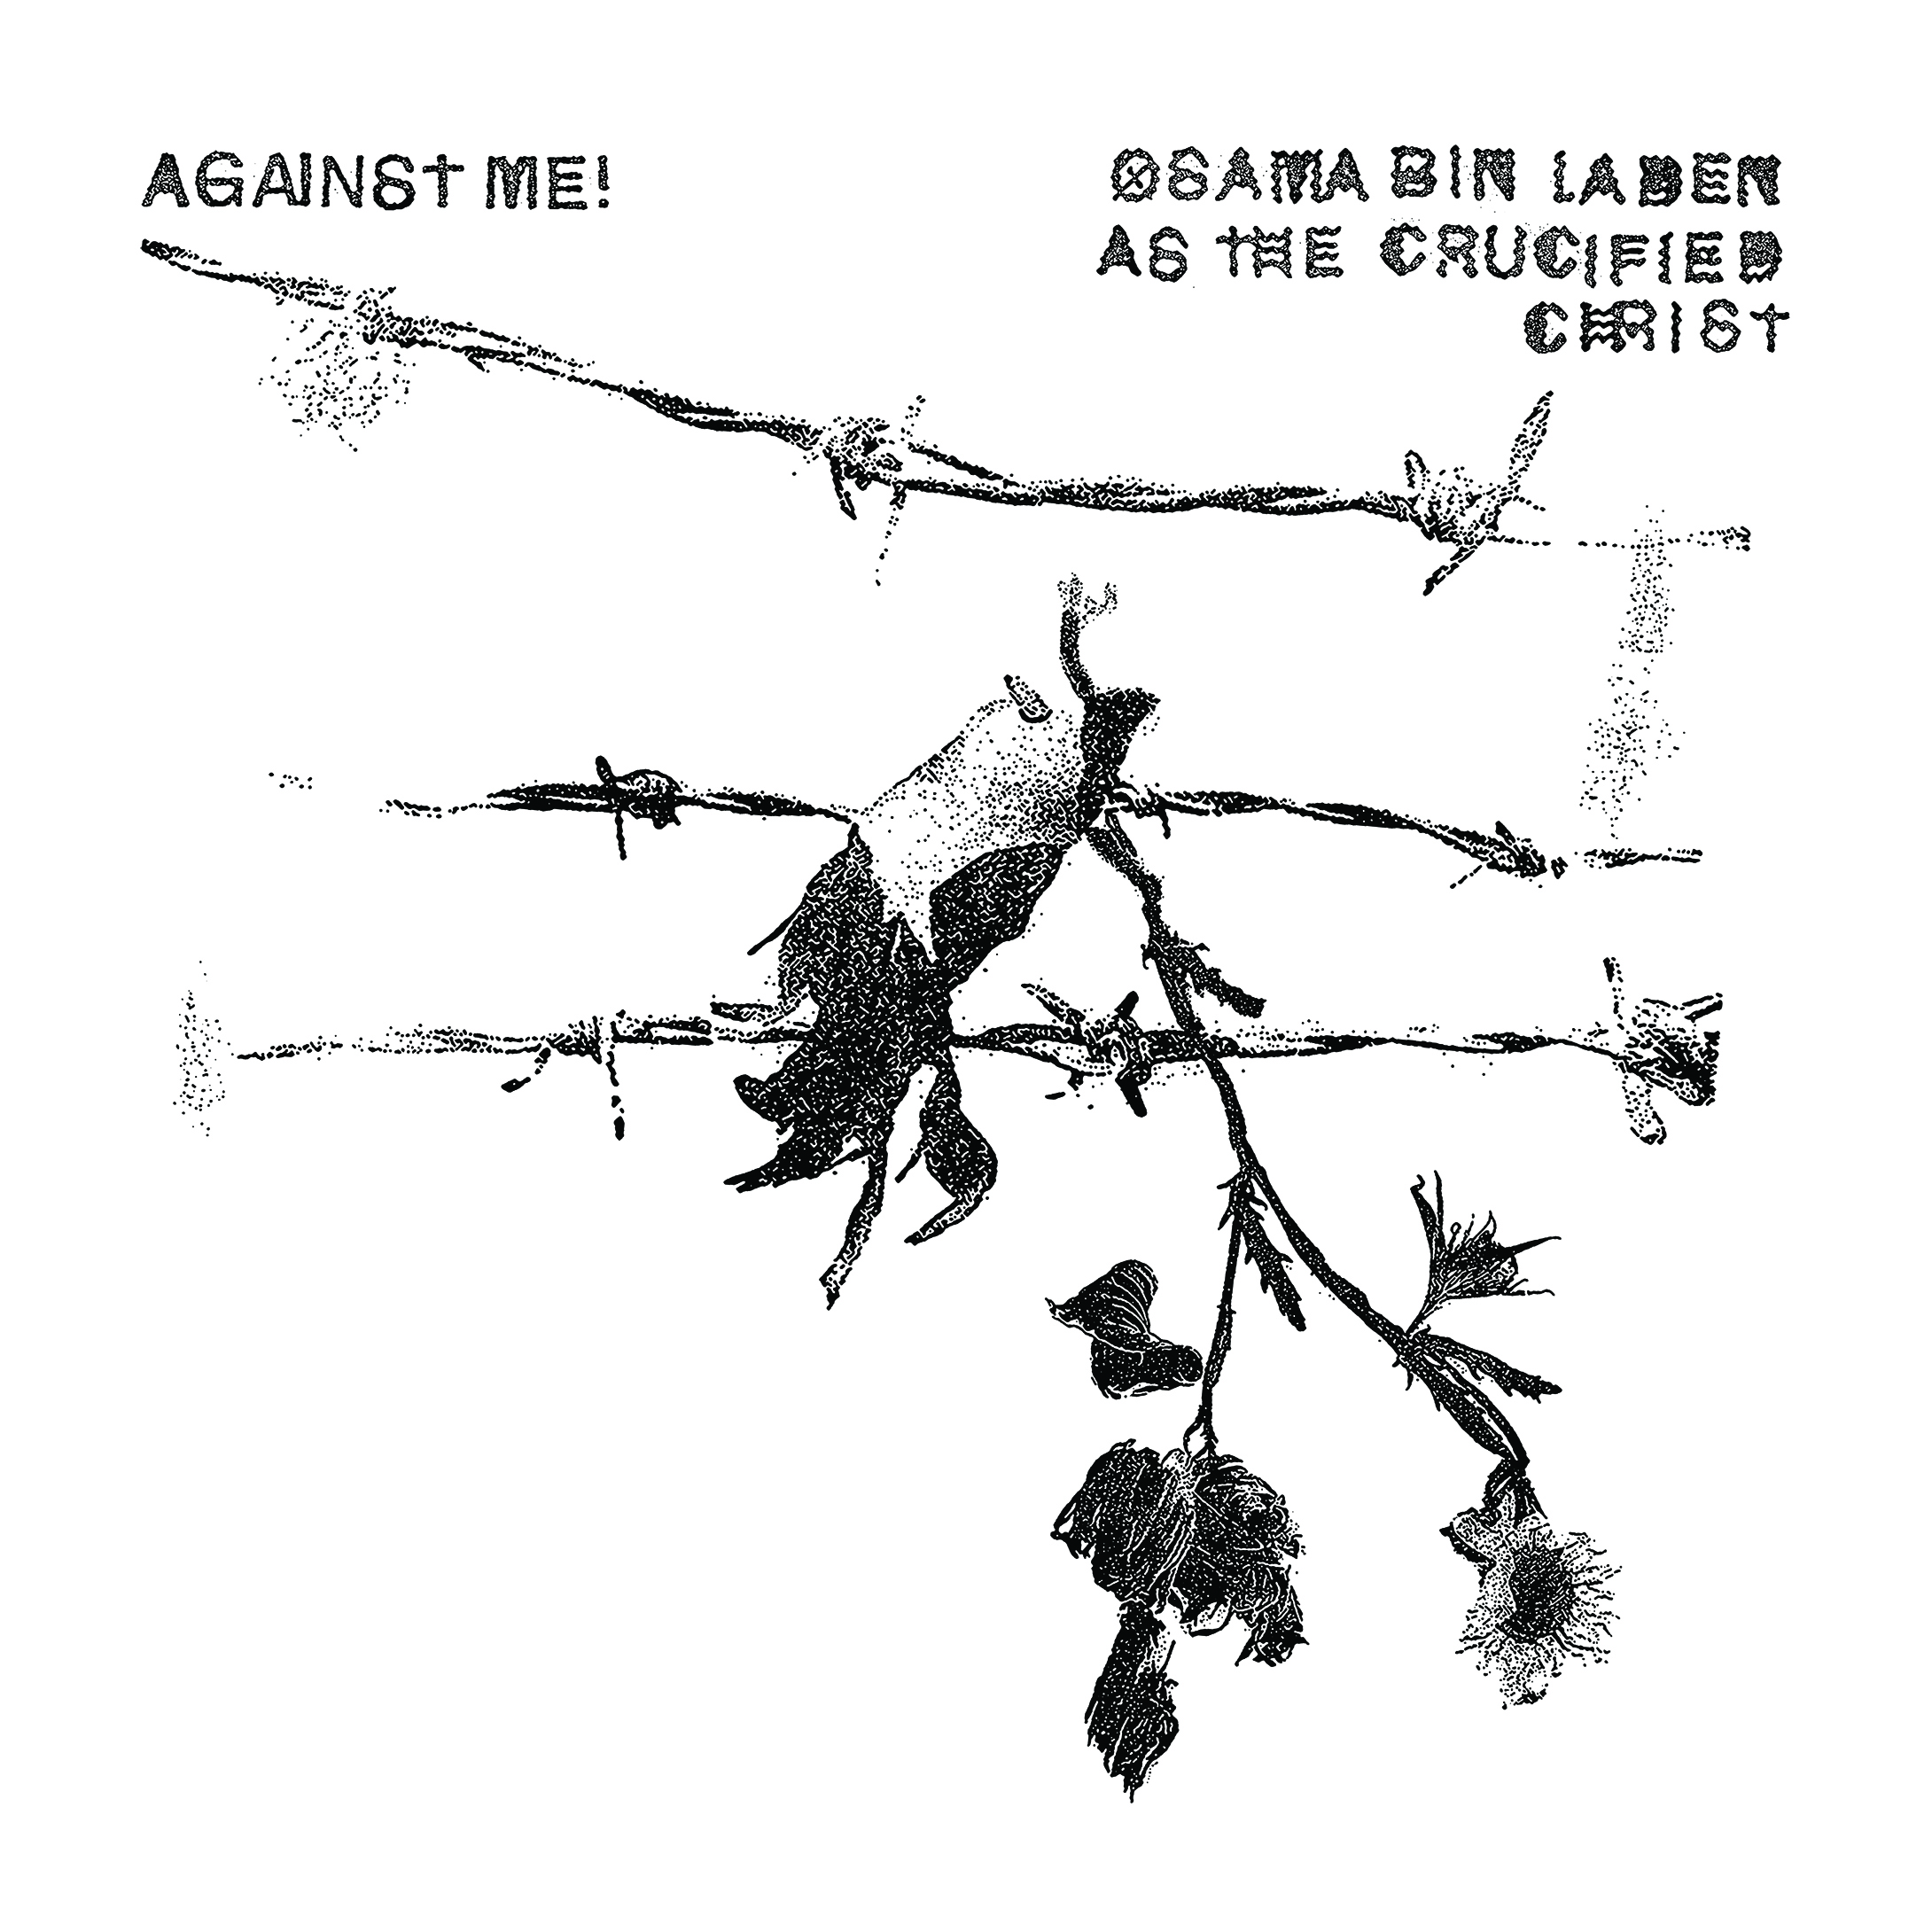 Against Me! - Osama Bin Laden As The Crucified Christ